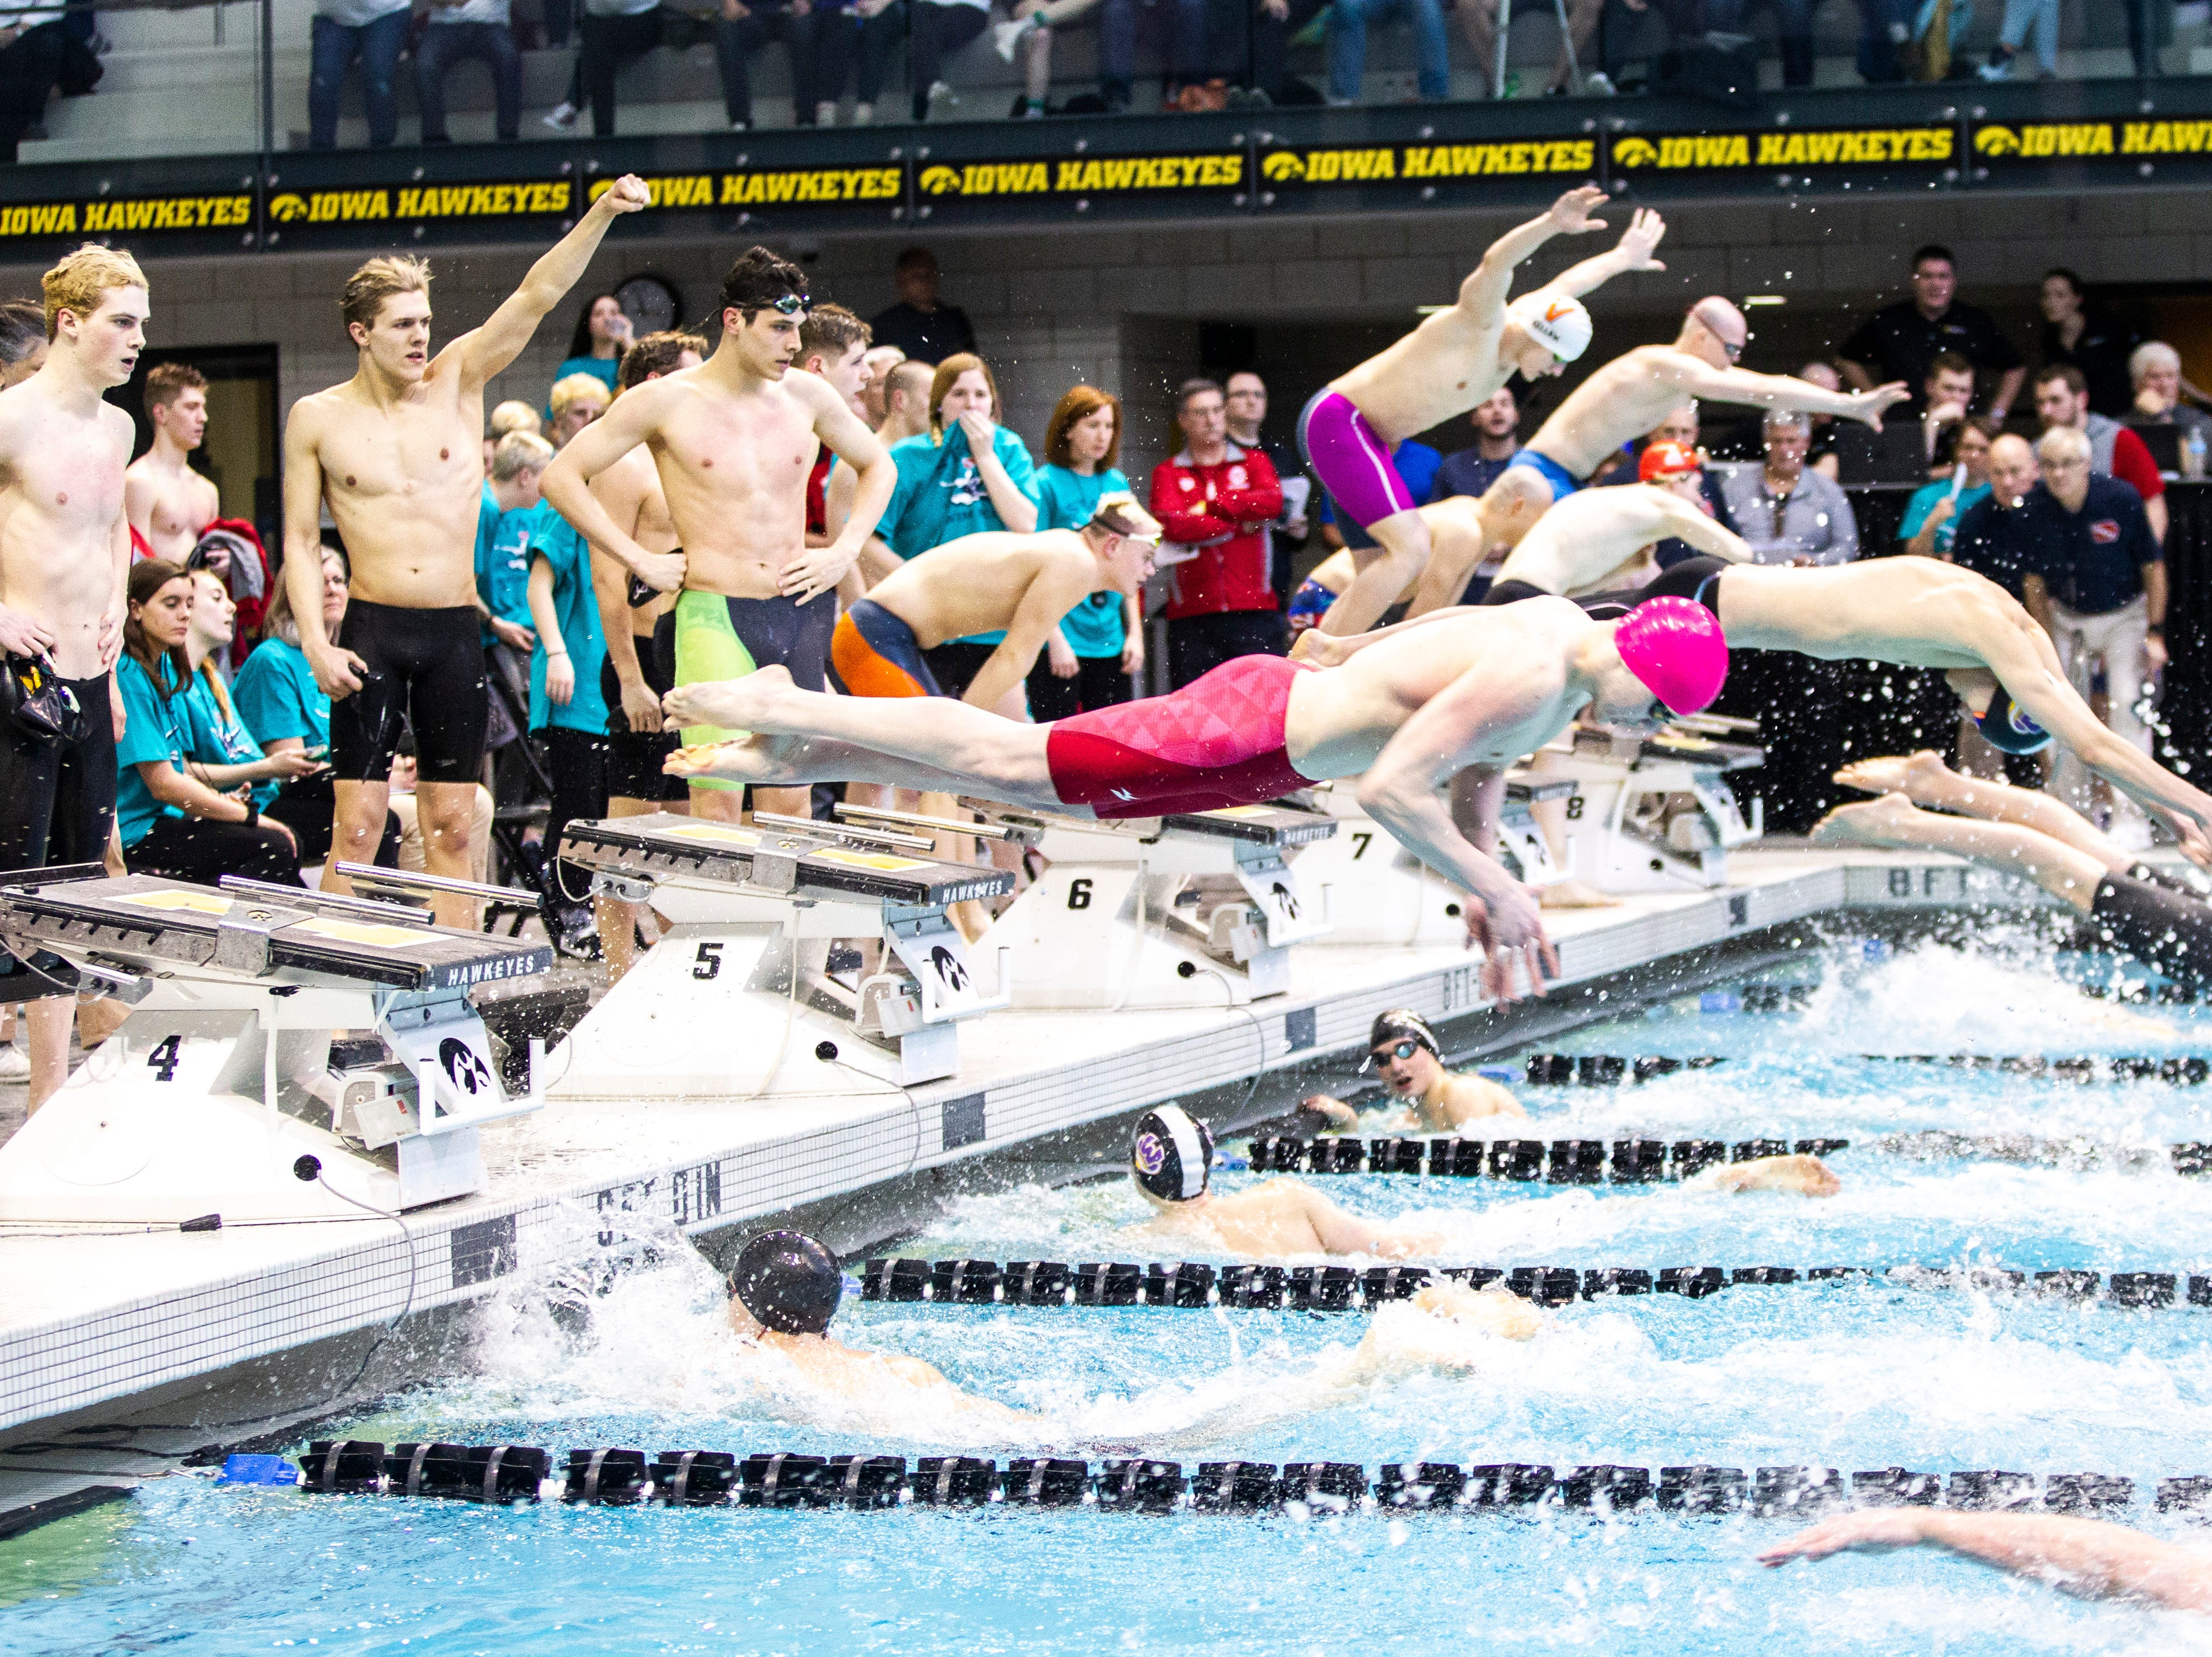 Competitors leap into the pool in the 200 yard freestyle relay during the Iowa boys' state swimming regional championship meet on Saturday, Feb. 9, 2019 at Campus Recreation and Wellness Center on the University of Iowa campus in Iowa City, Iowa.